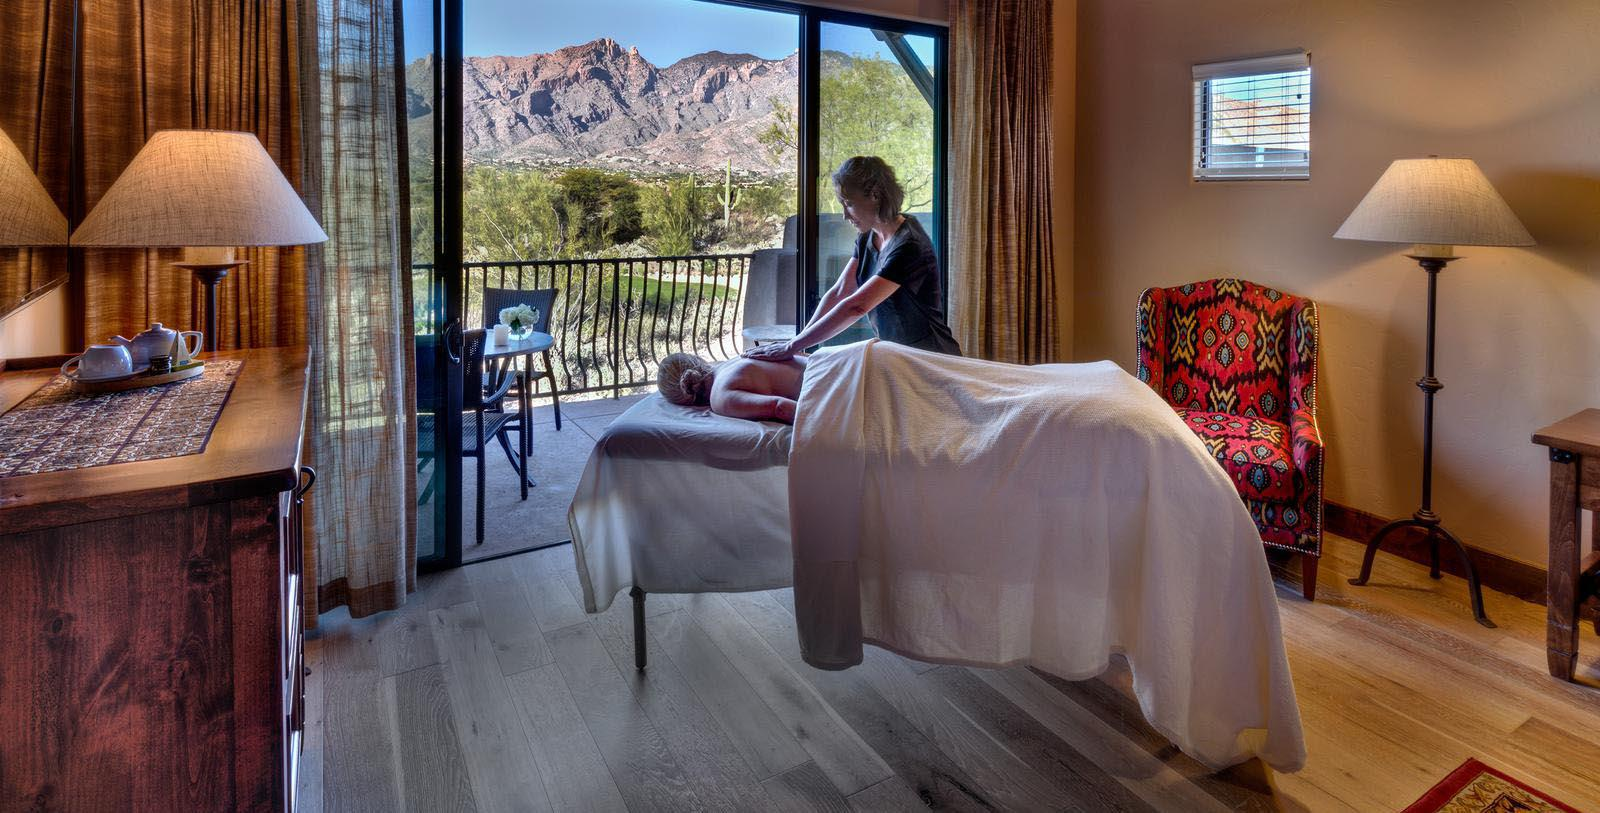 Image of spa massage Hacienda Del Sol Guest Ranch Resort, 1929, Member of Historic Hotels of America, in Tuscan, Arizona, Explore